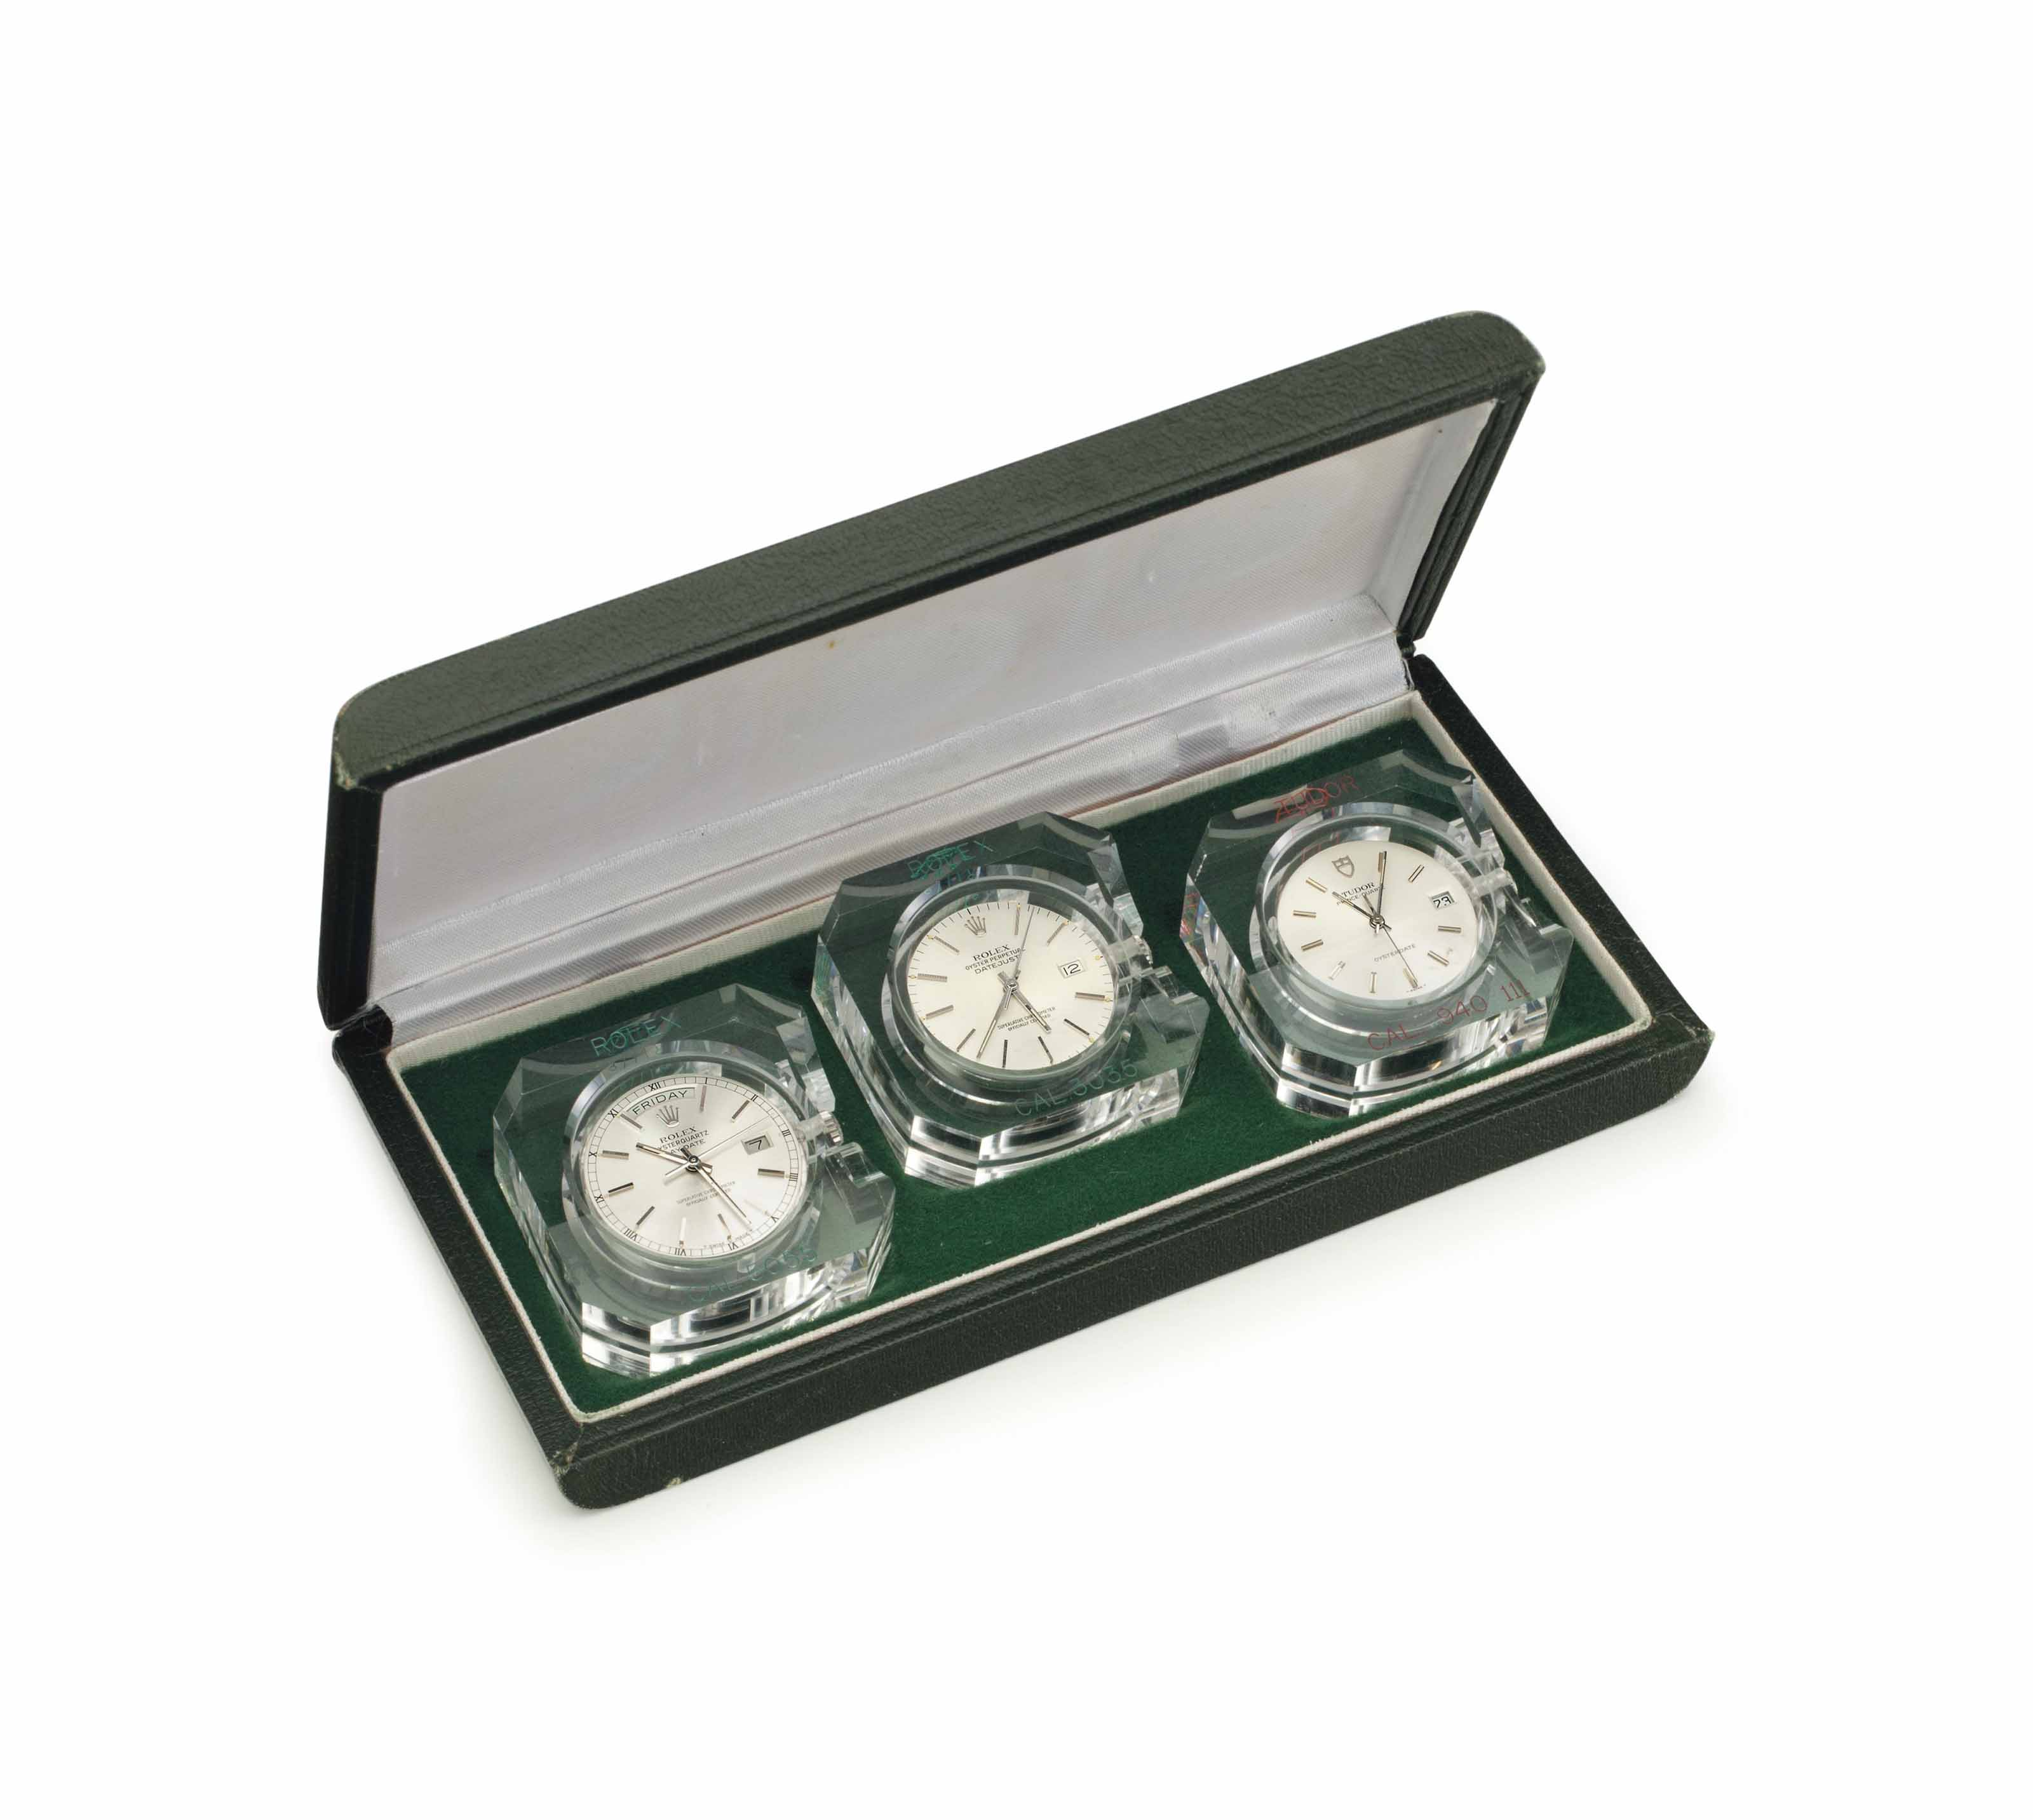 Rolex and Tudor. A Set of Movements for Point of Sale Presentation